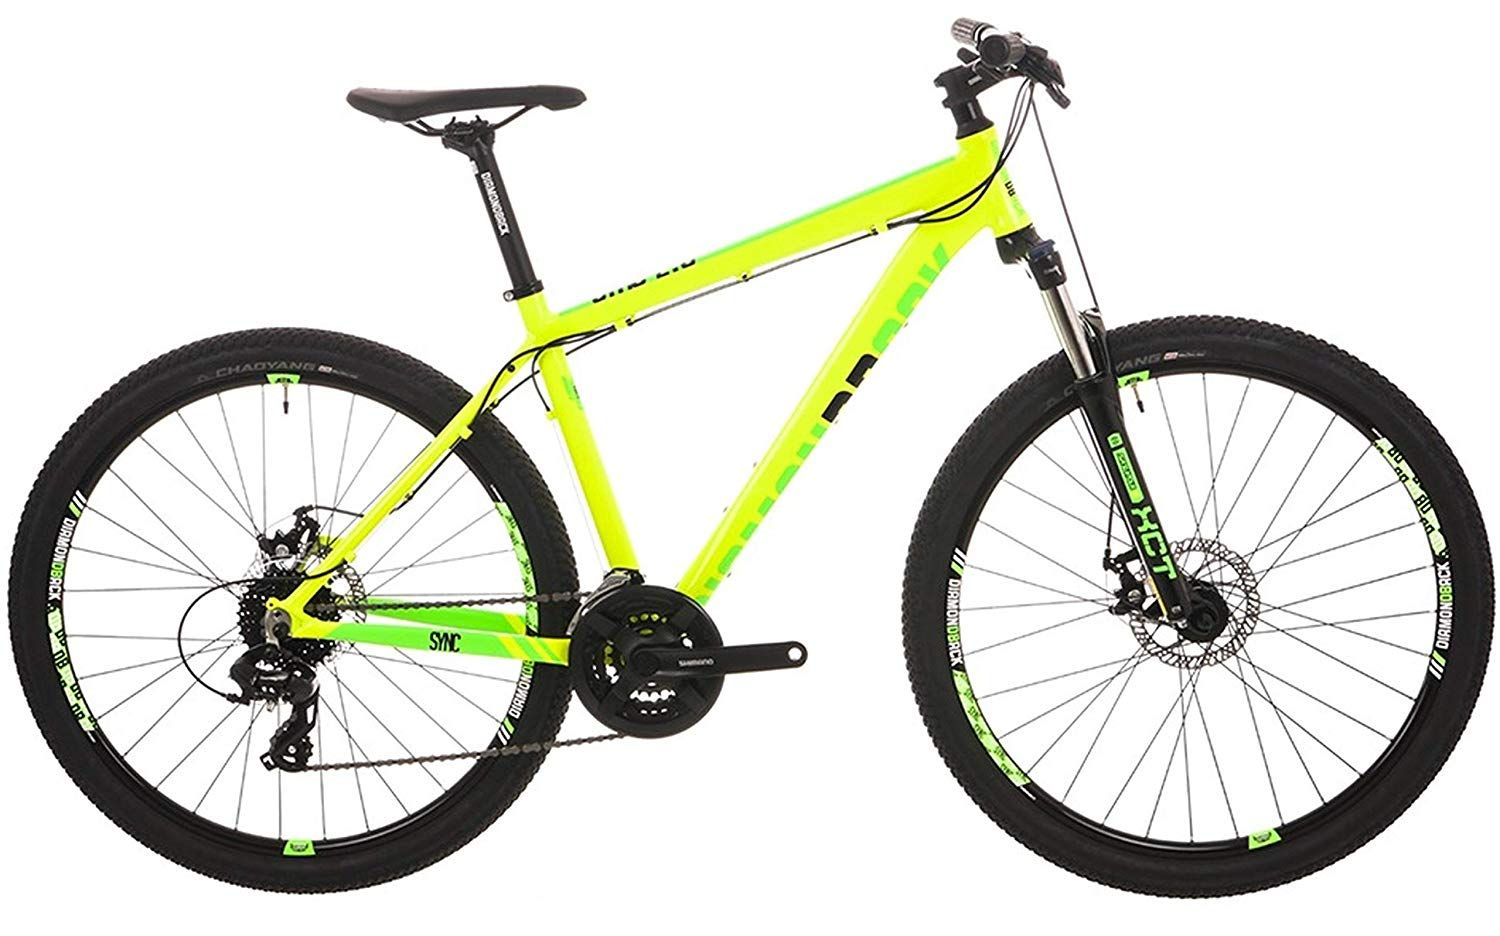 Today I M Going To Look For Mountain Bikes For Beginners And The